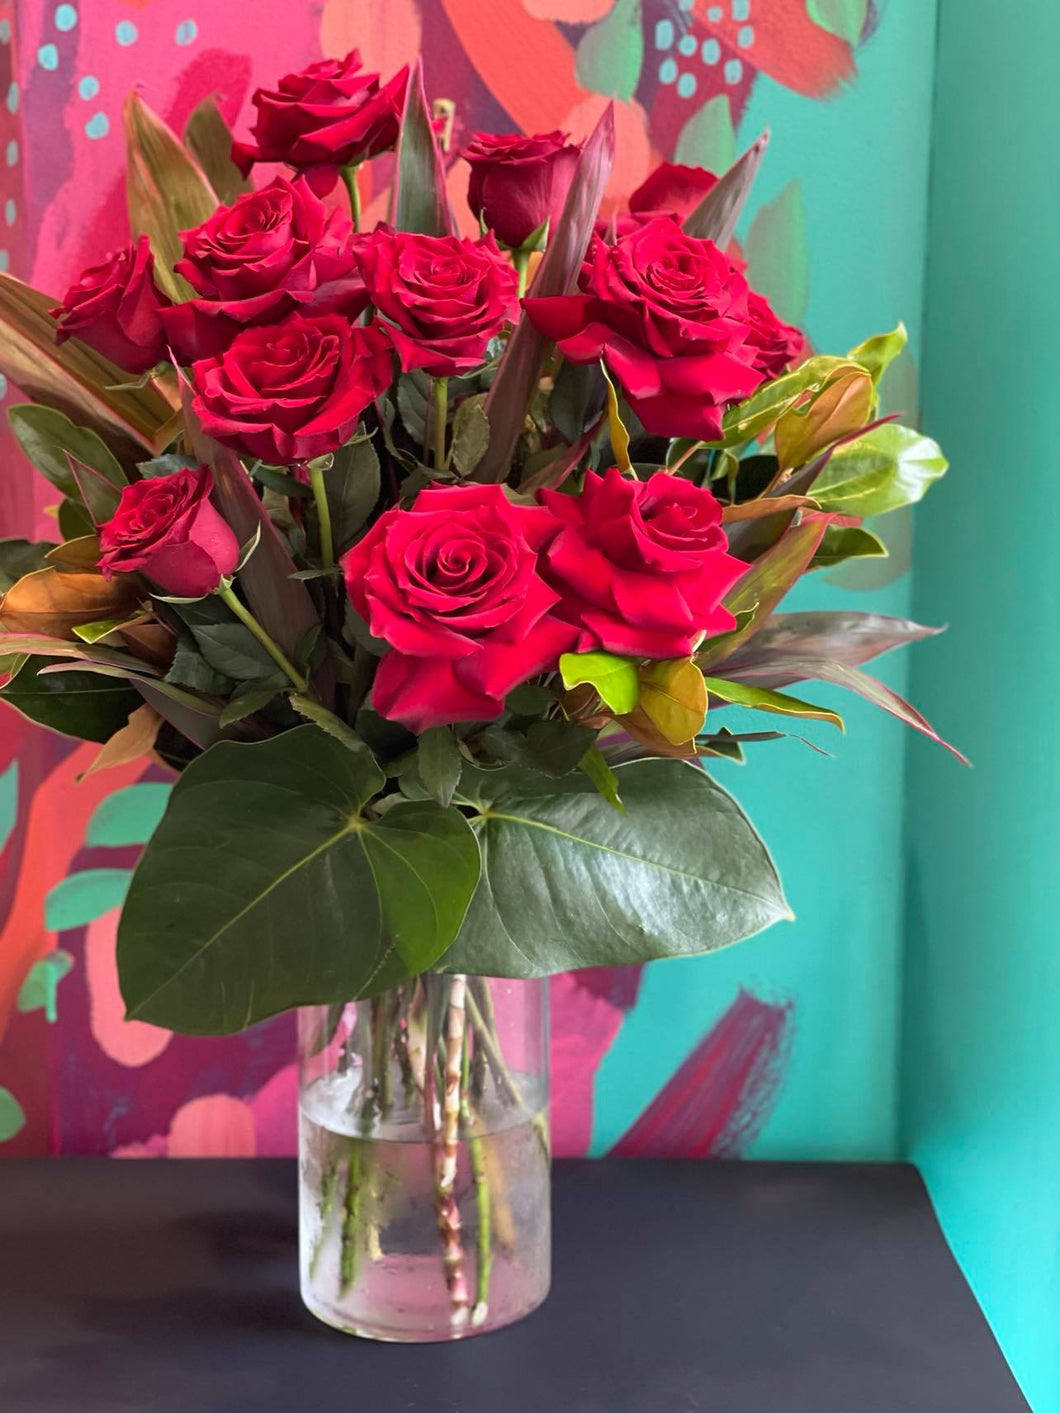 VALENTINES DAY ONE DOZEN RED ROSES IN CLEAR GLASS VASE